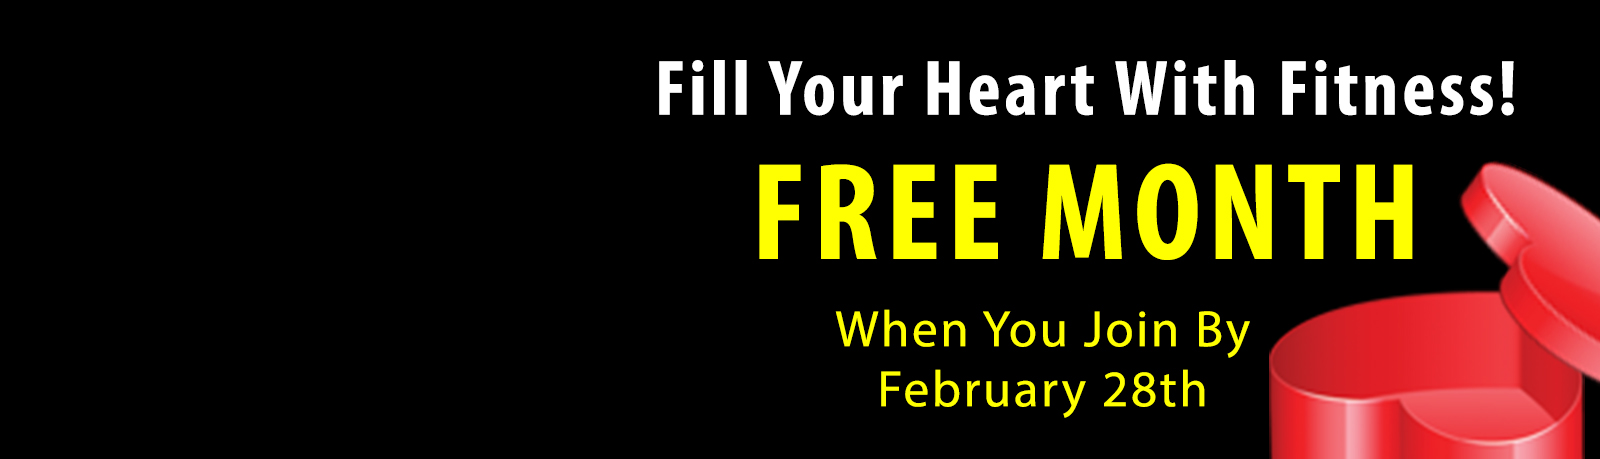 24e Health Clubs - Free Month When Join By February 28th